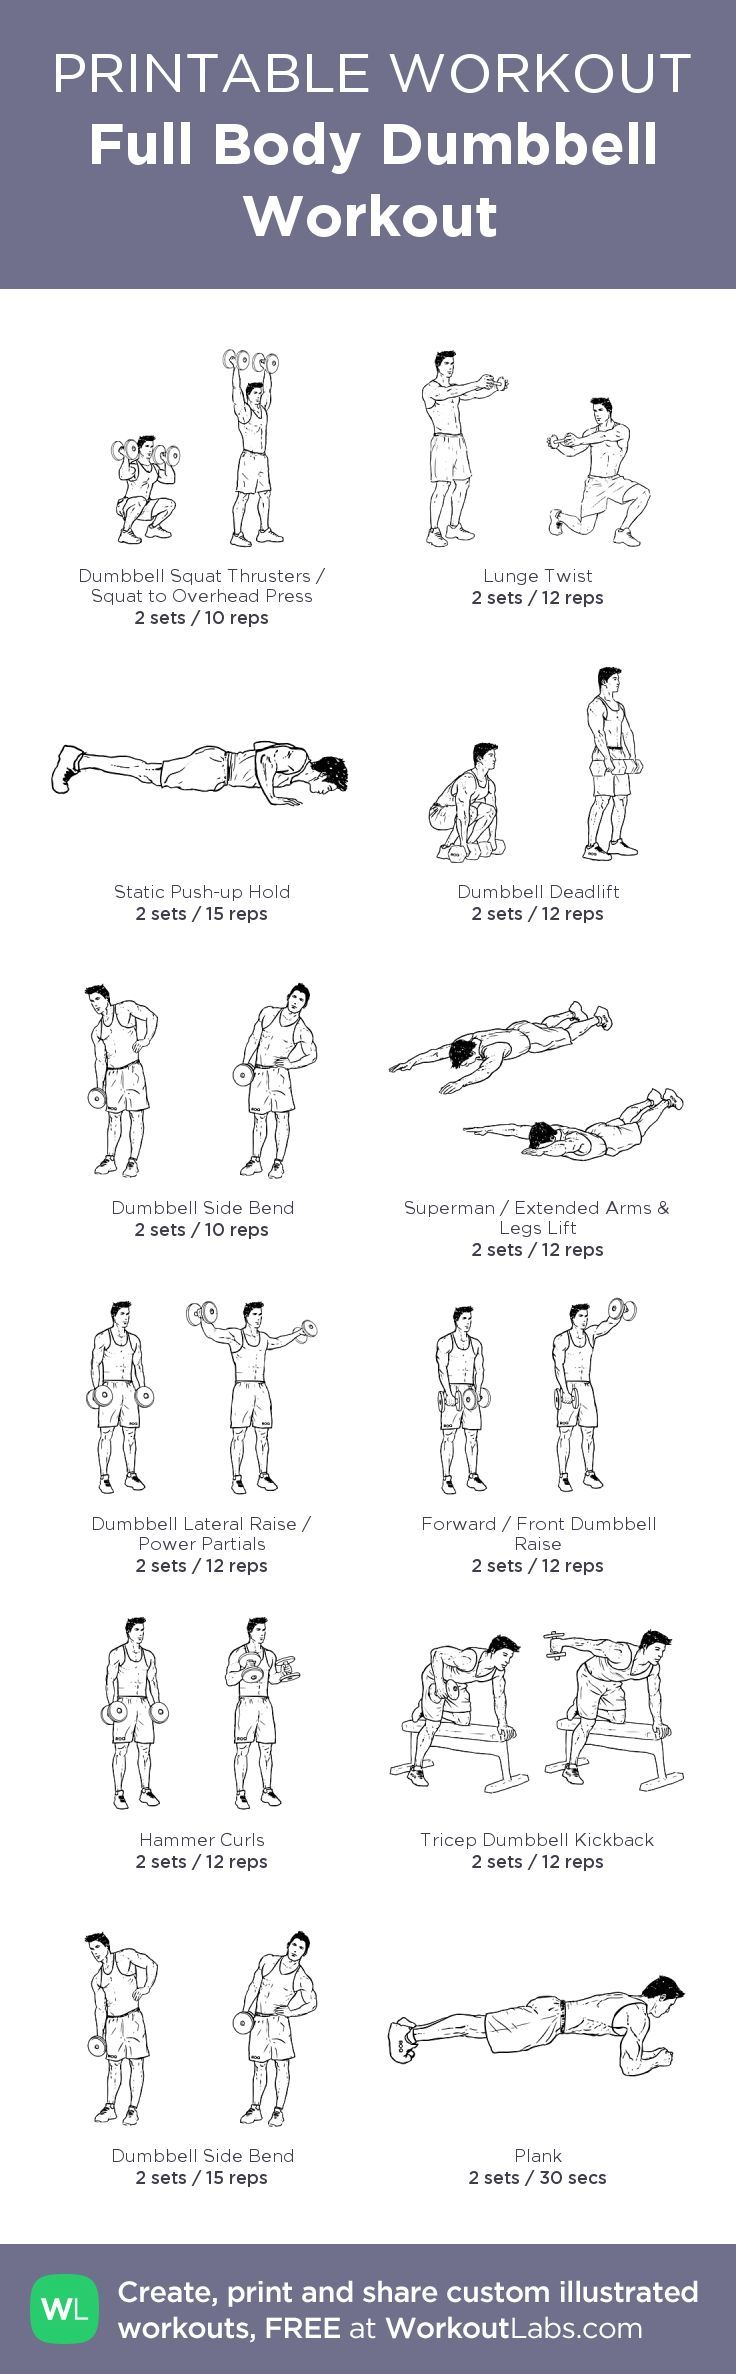 721 best strength images on pinterest workout routines full